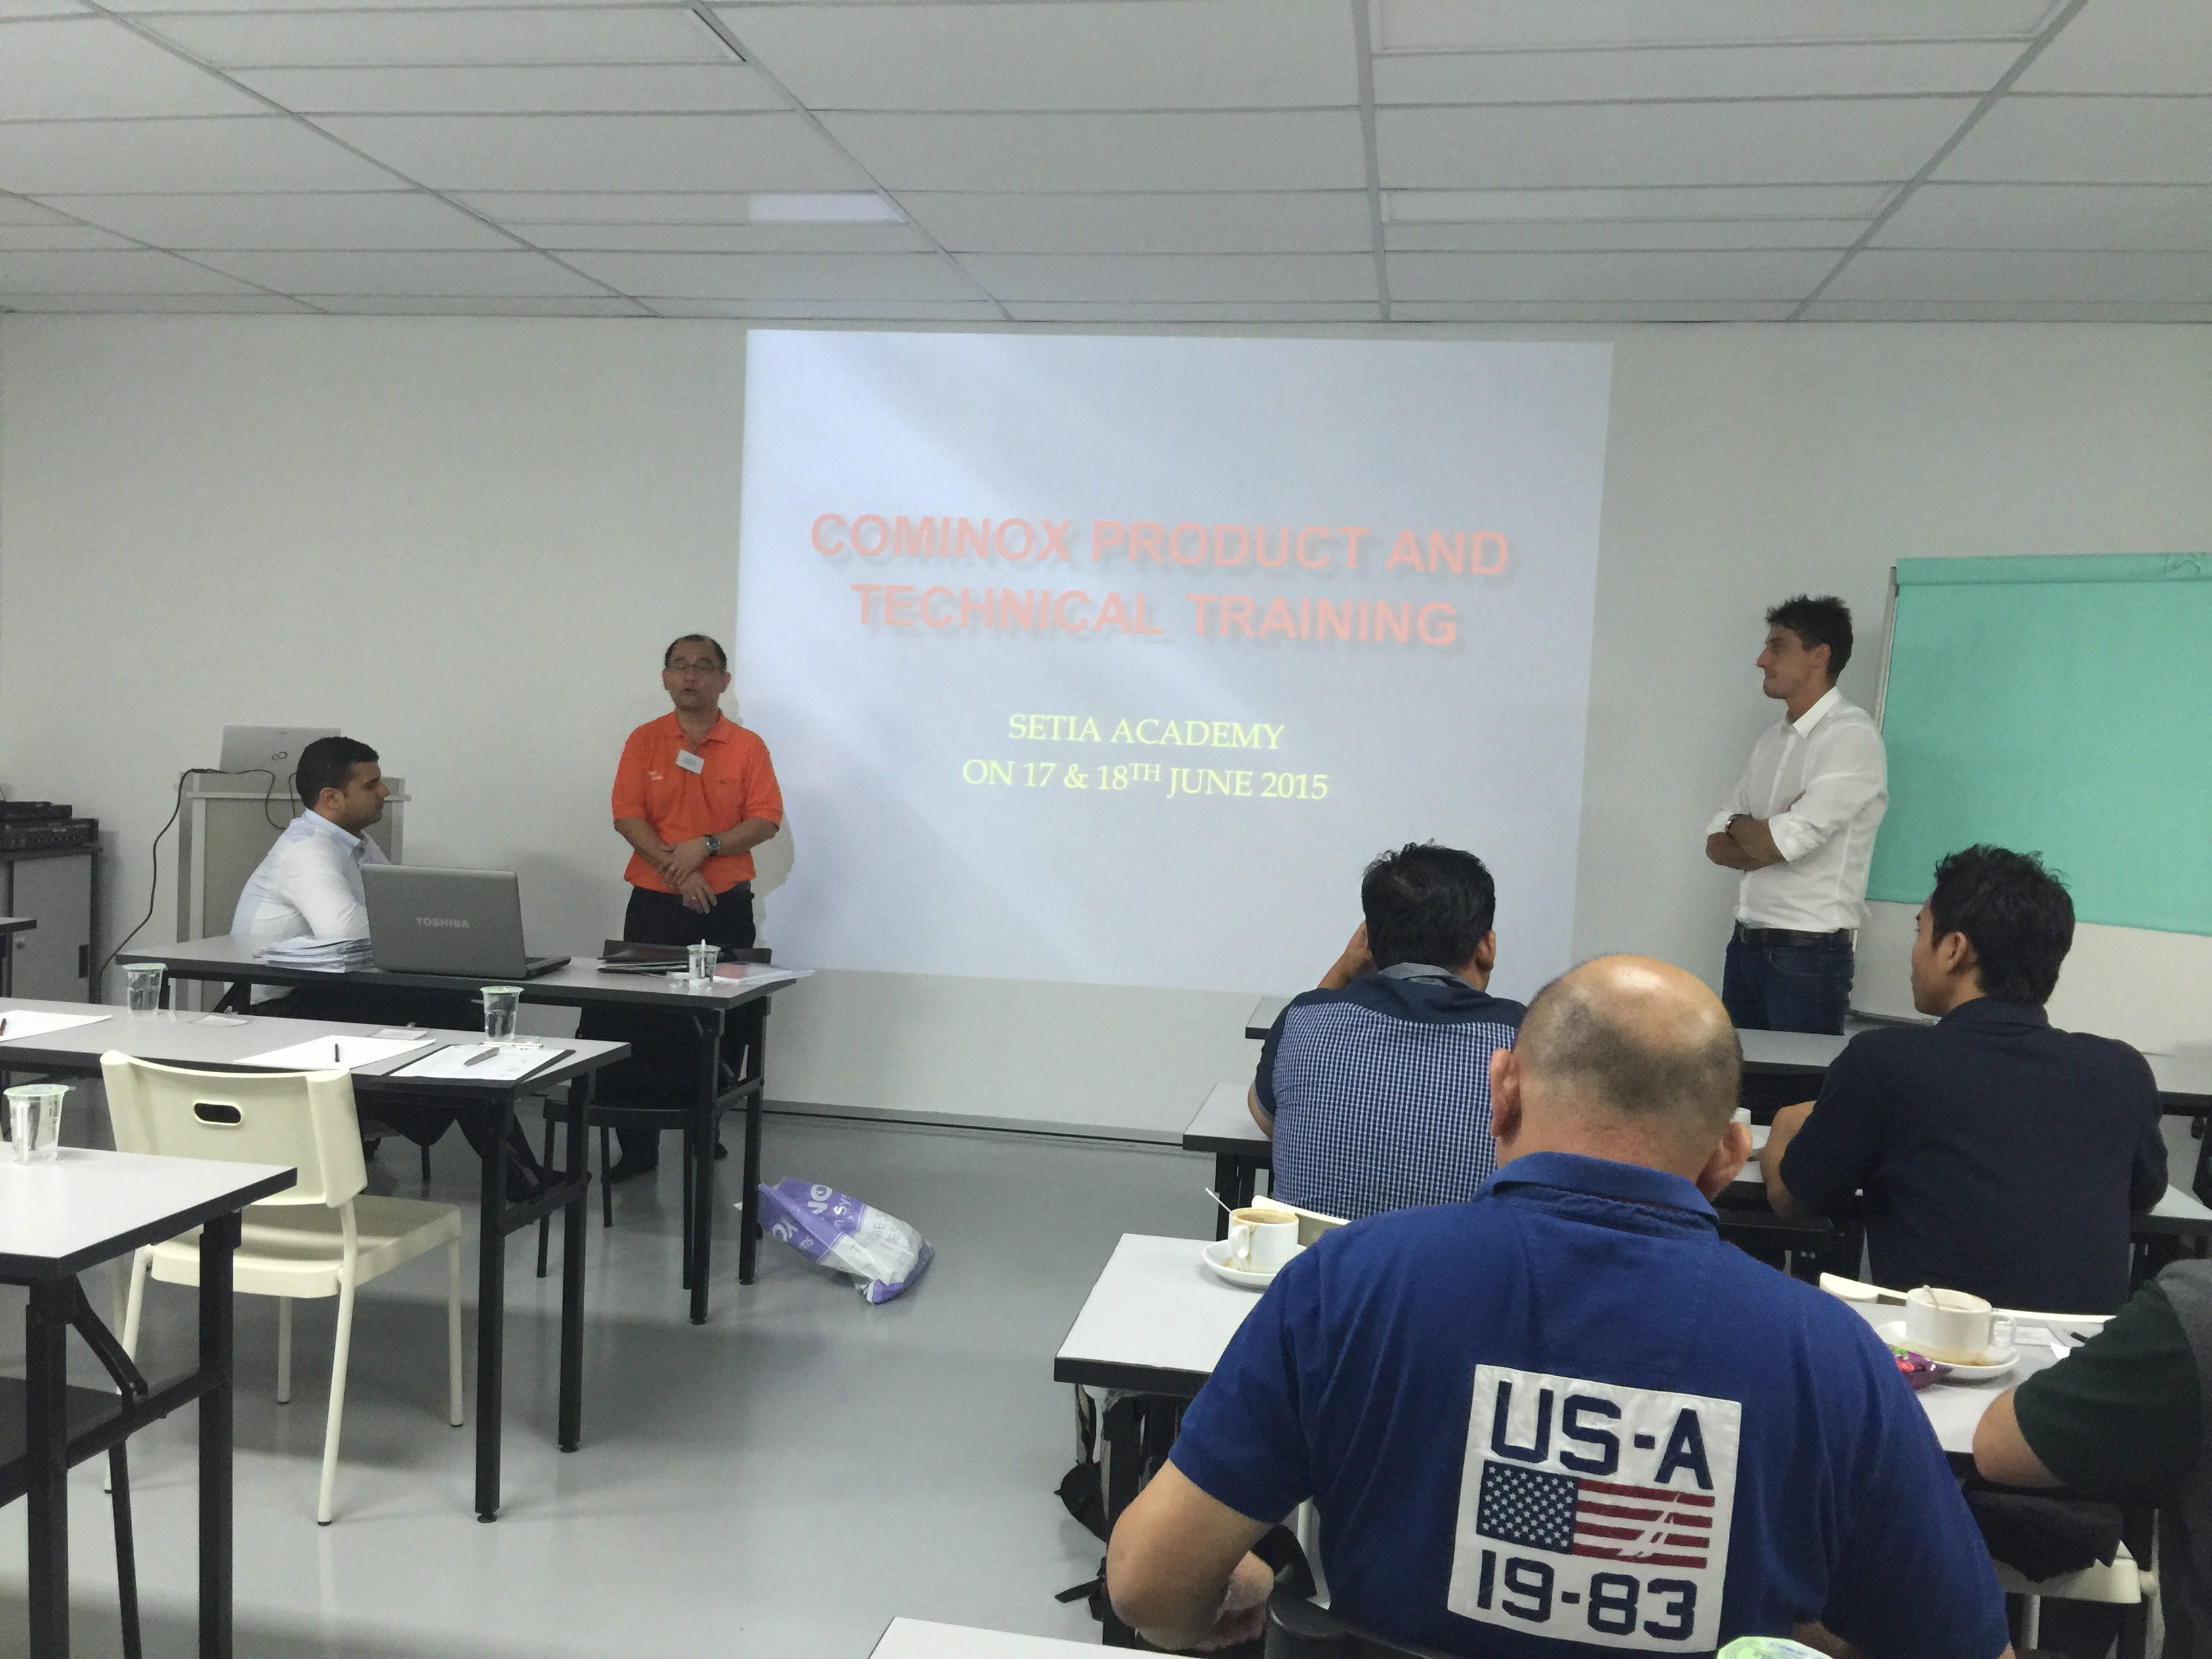 Cominox Products & Technical Trainin